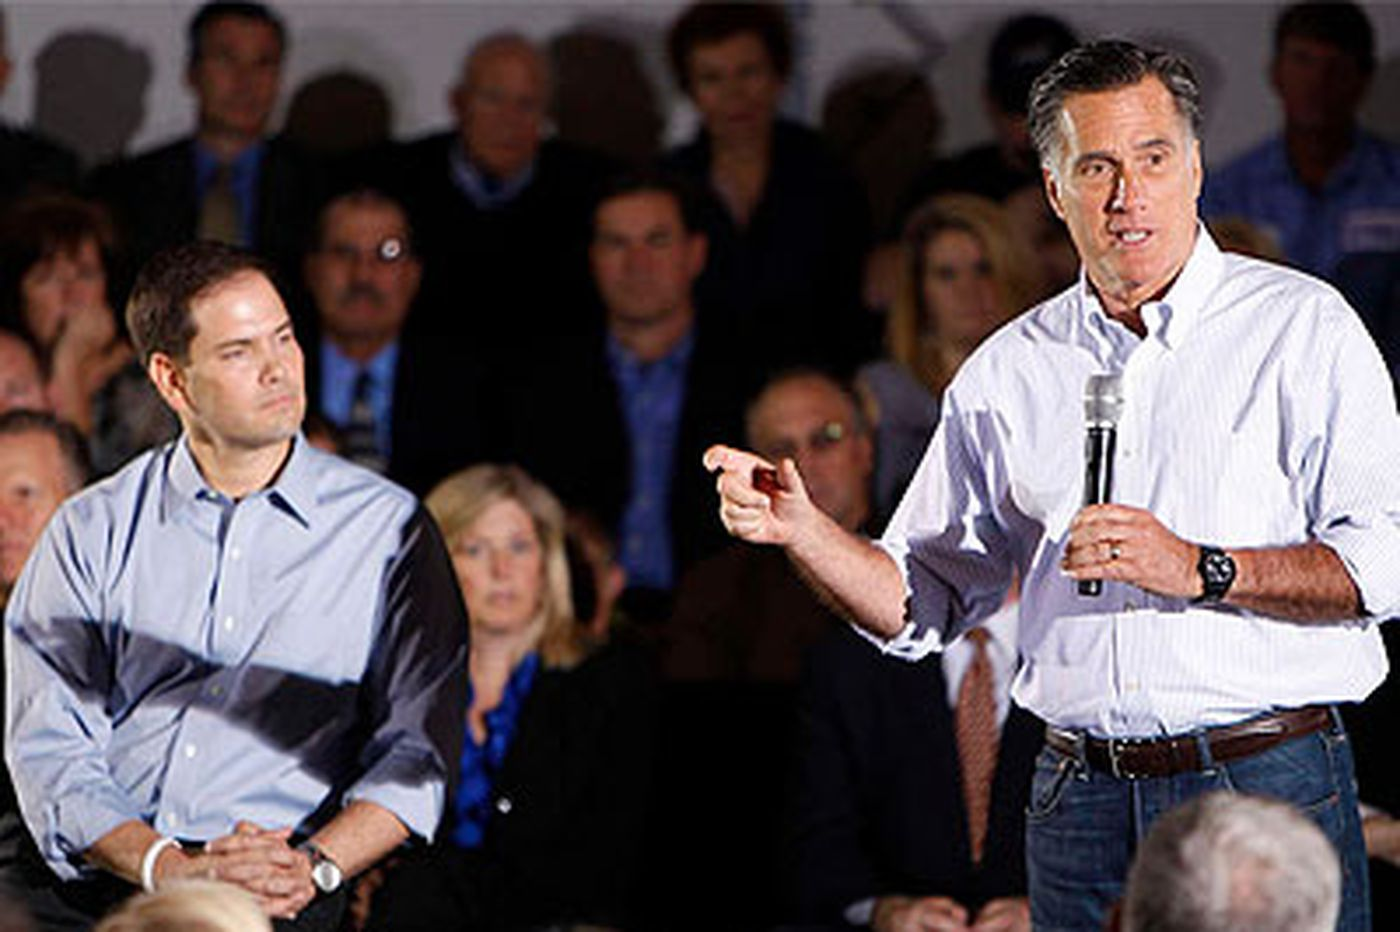 Romney campaigns outside Philly with Rubio